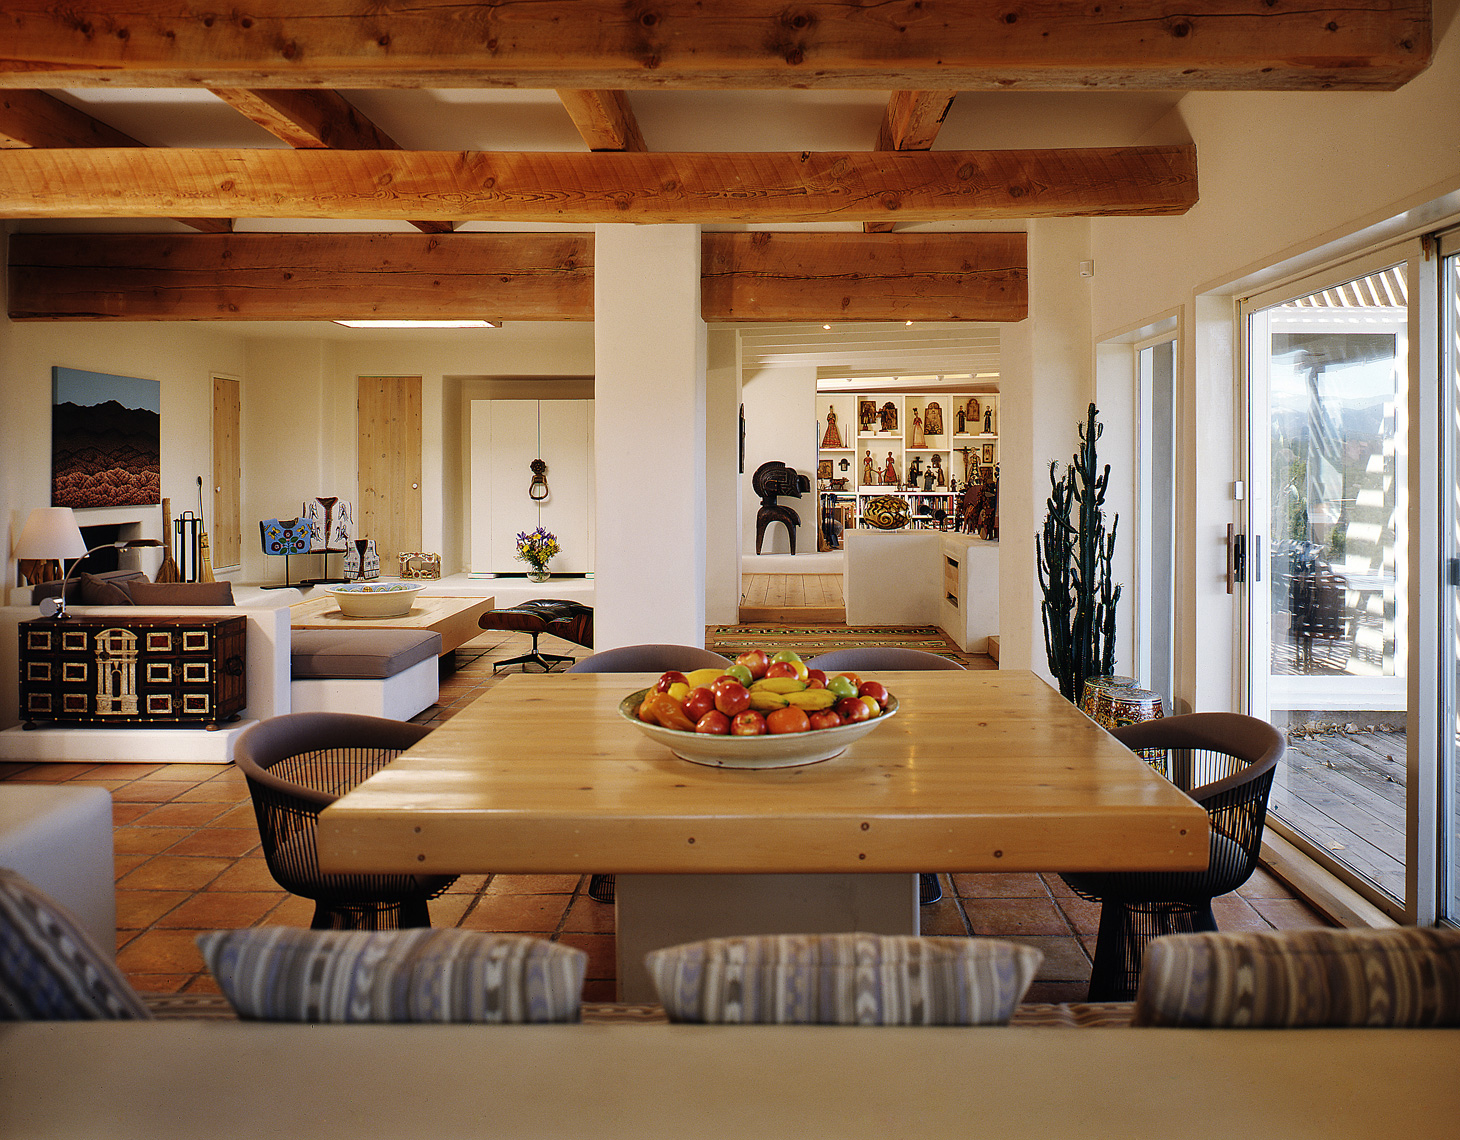 davidhoptman_interior-photo-16livngrmsantafe_3.jpg